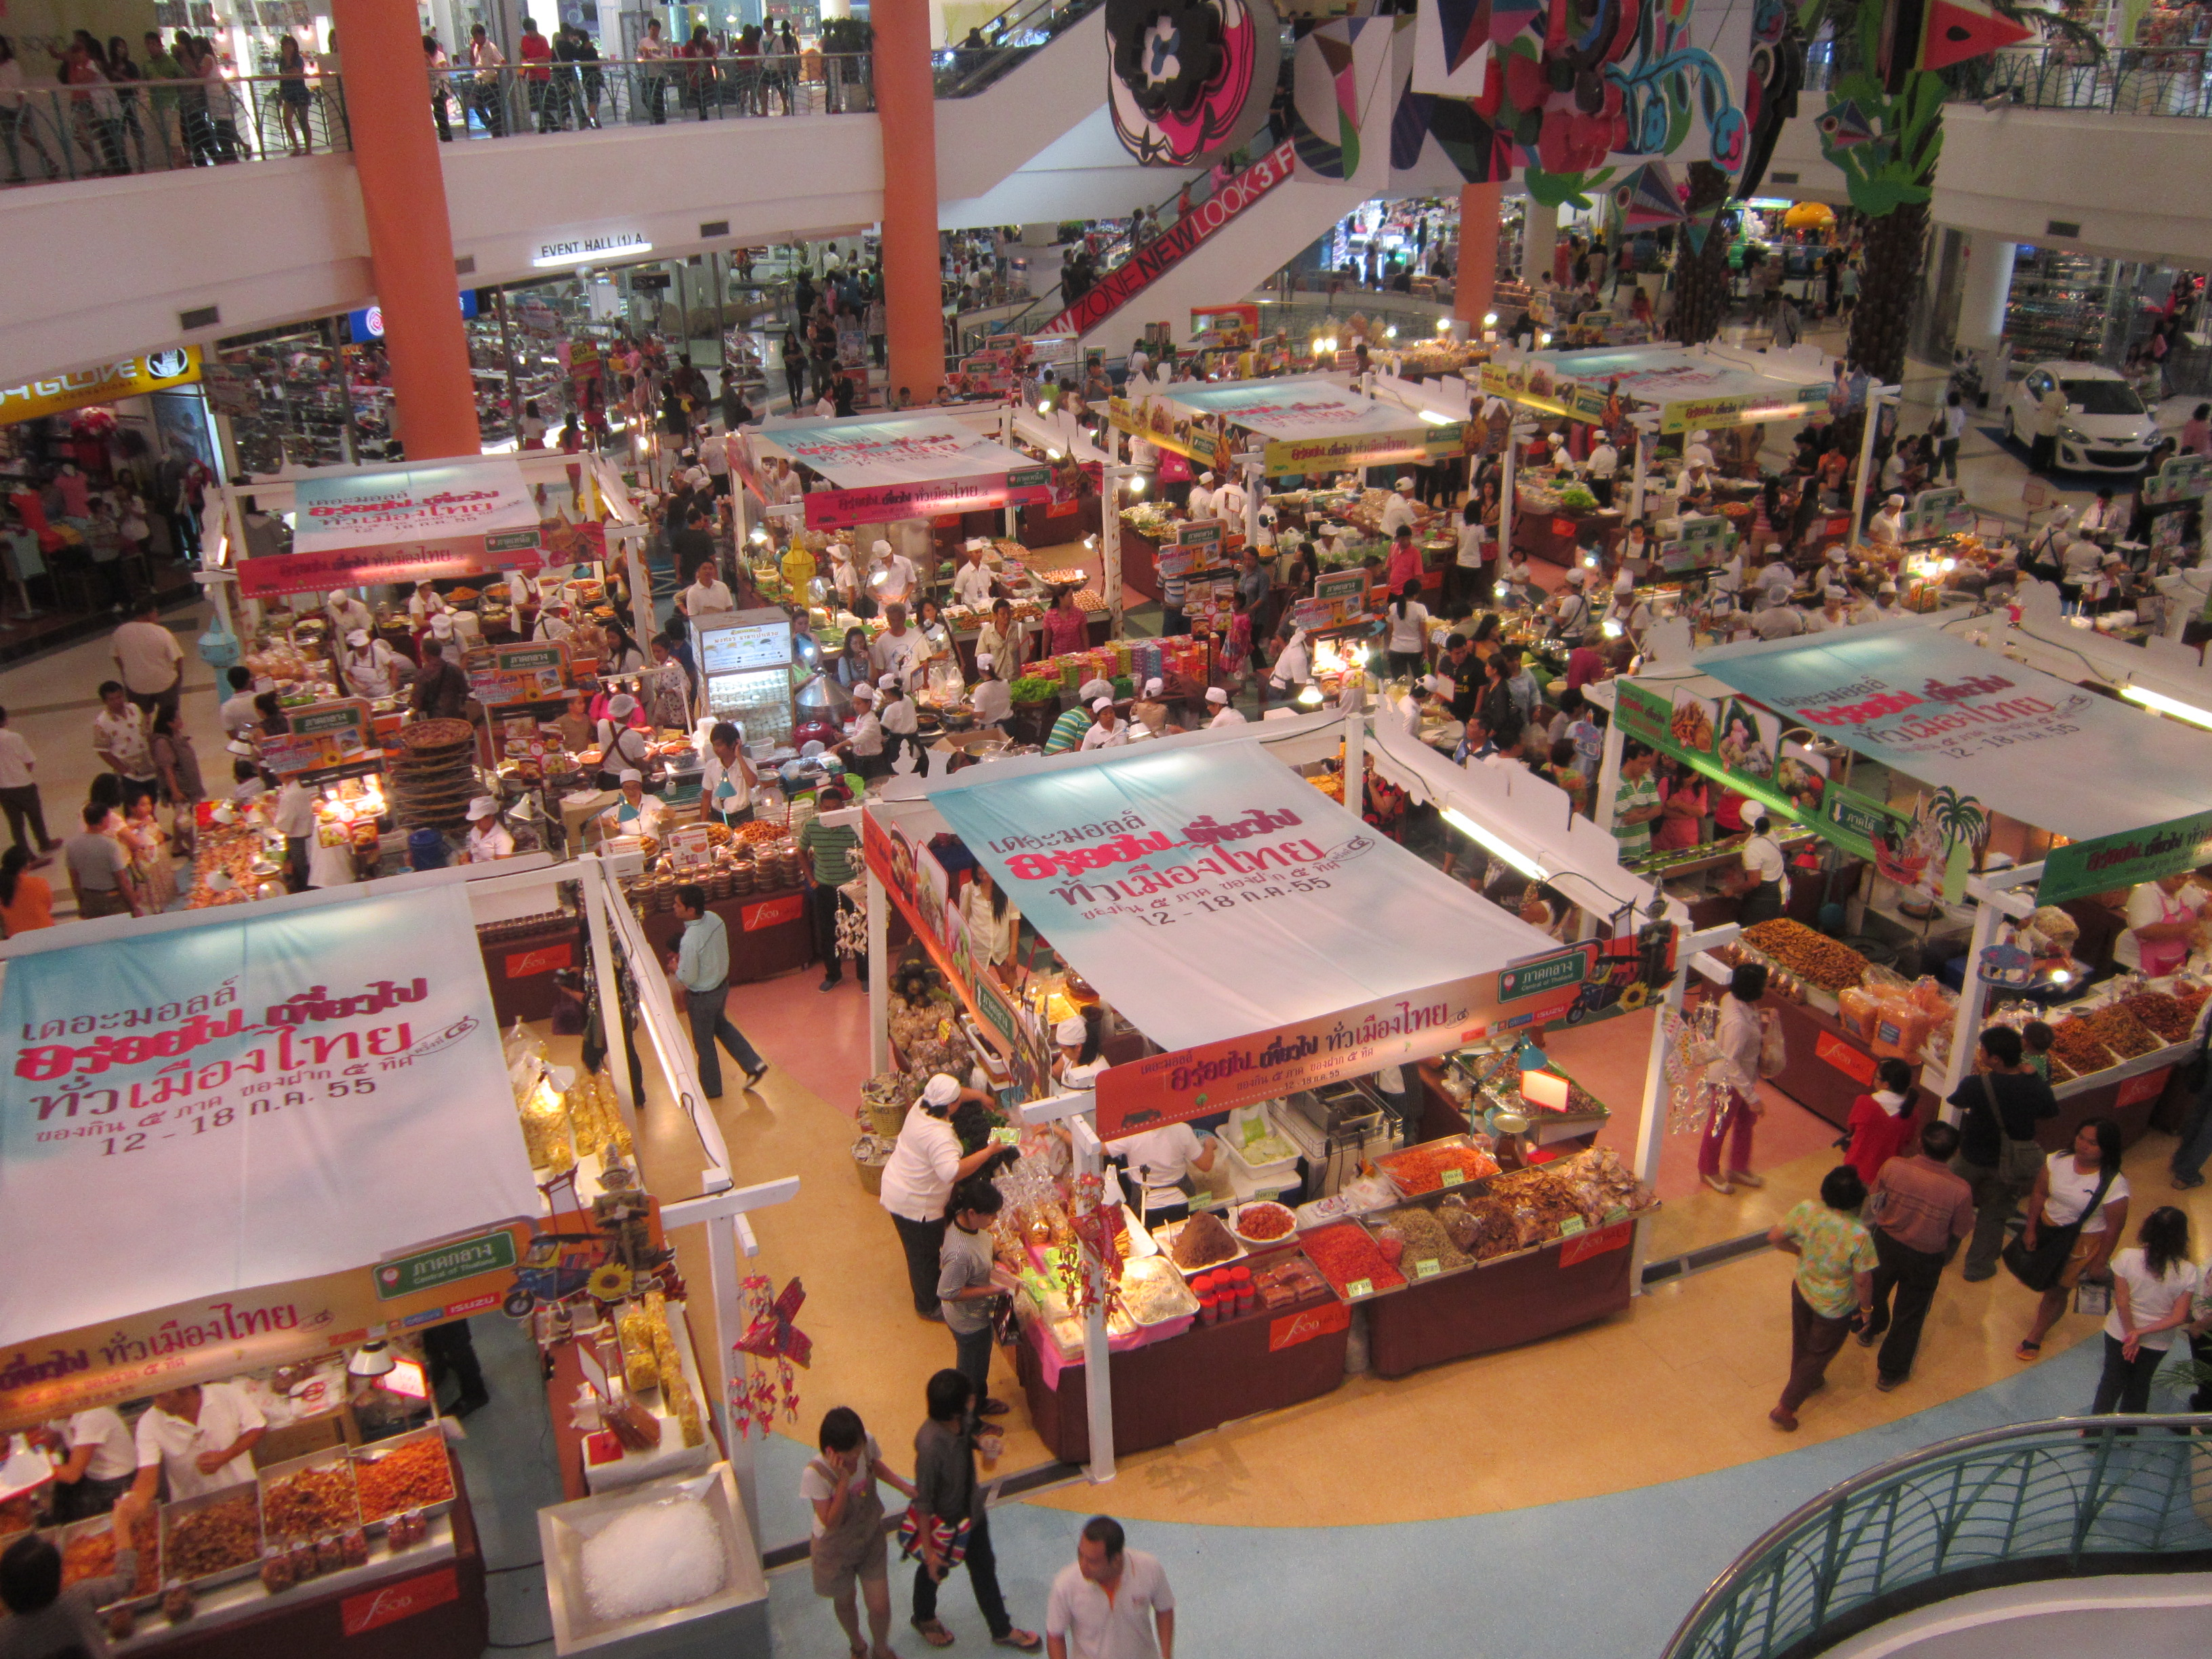 Bangkok Thailand mall food court market